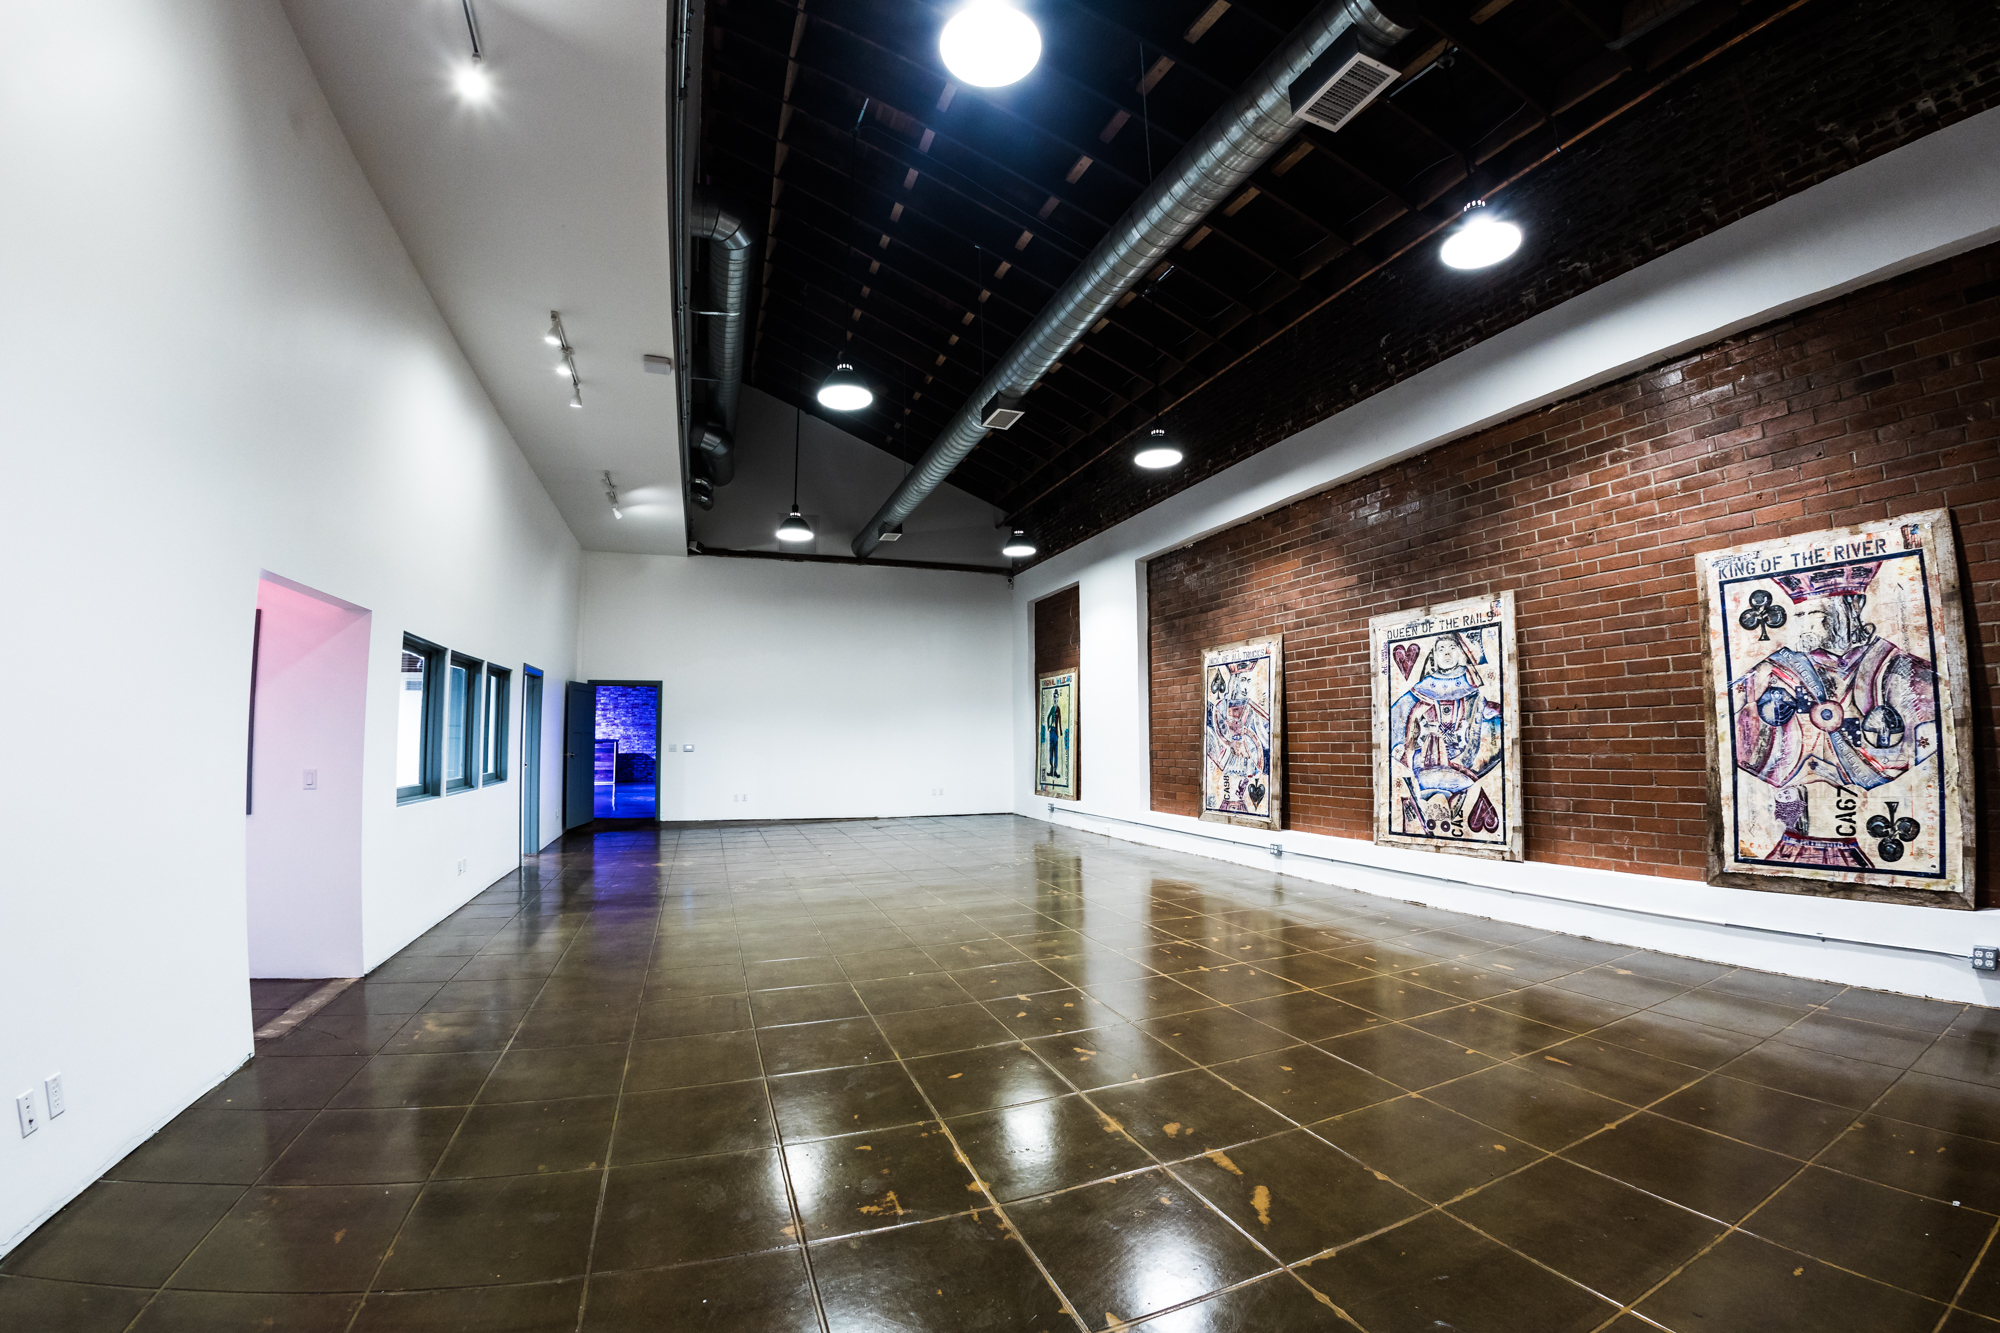 Gallery - High ceilings and plenty of wall space make this entry room an ideal art gallery. Adorned with vintage light fixtures, and brick & stucco walls, the Gallery is suitable as the gateway to a larger event, or a standalone affair.